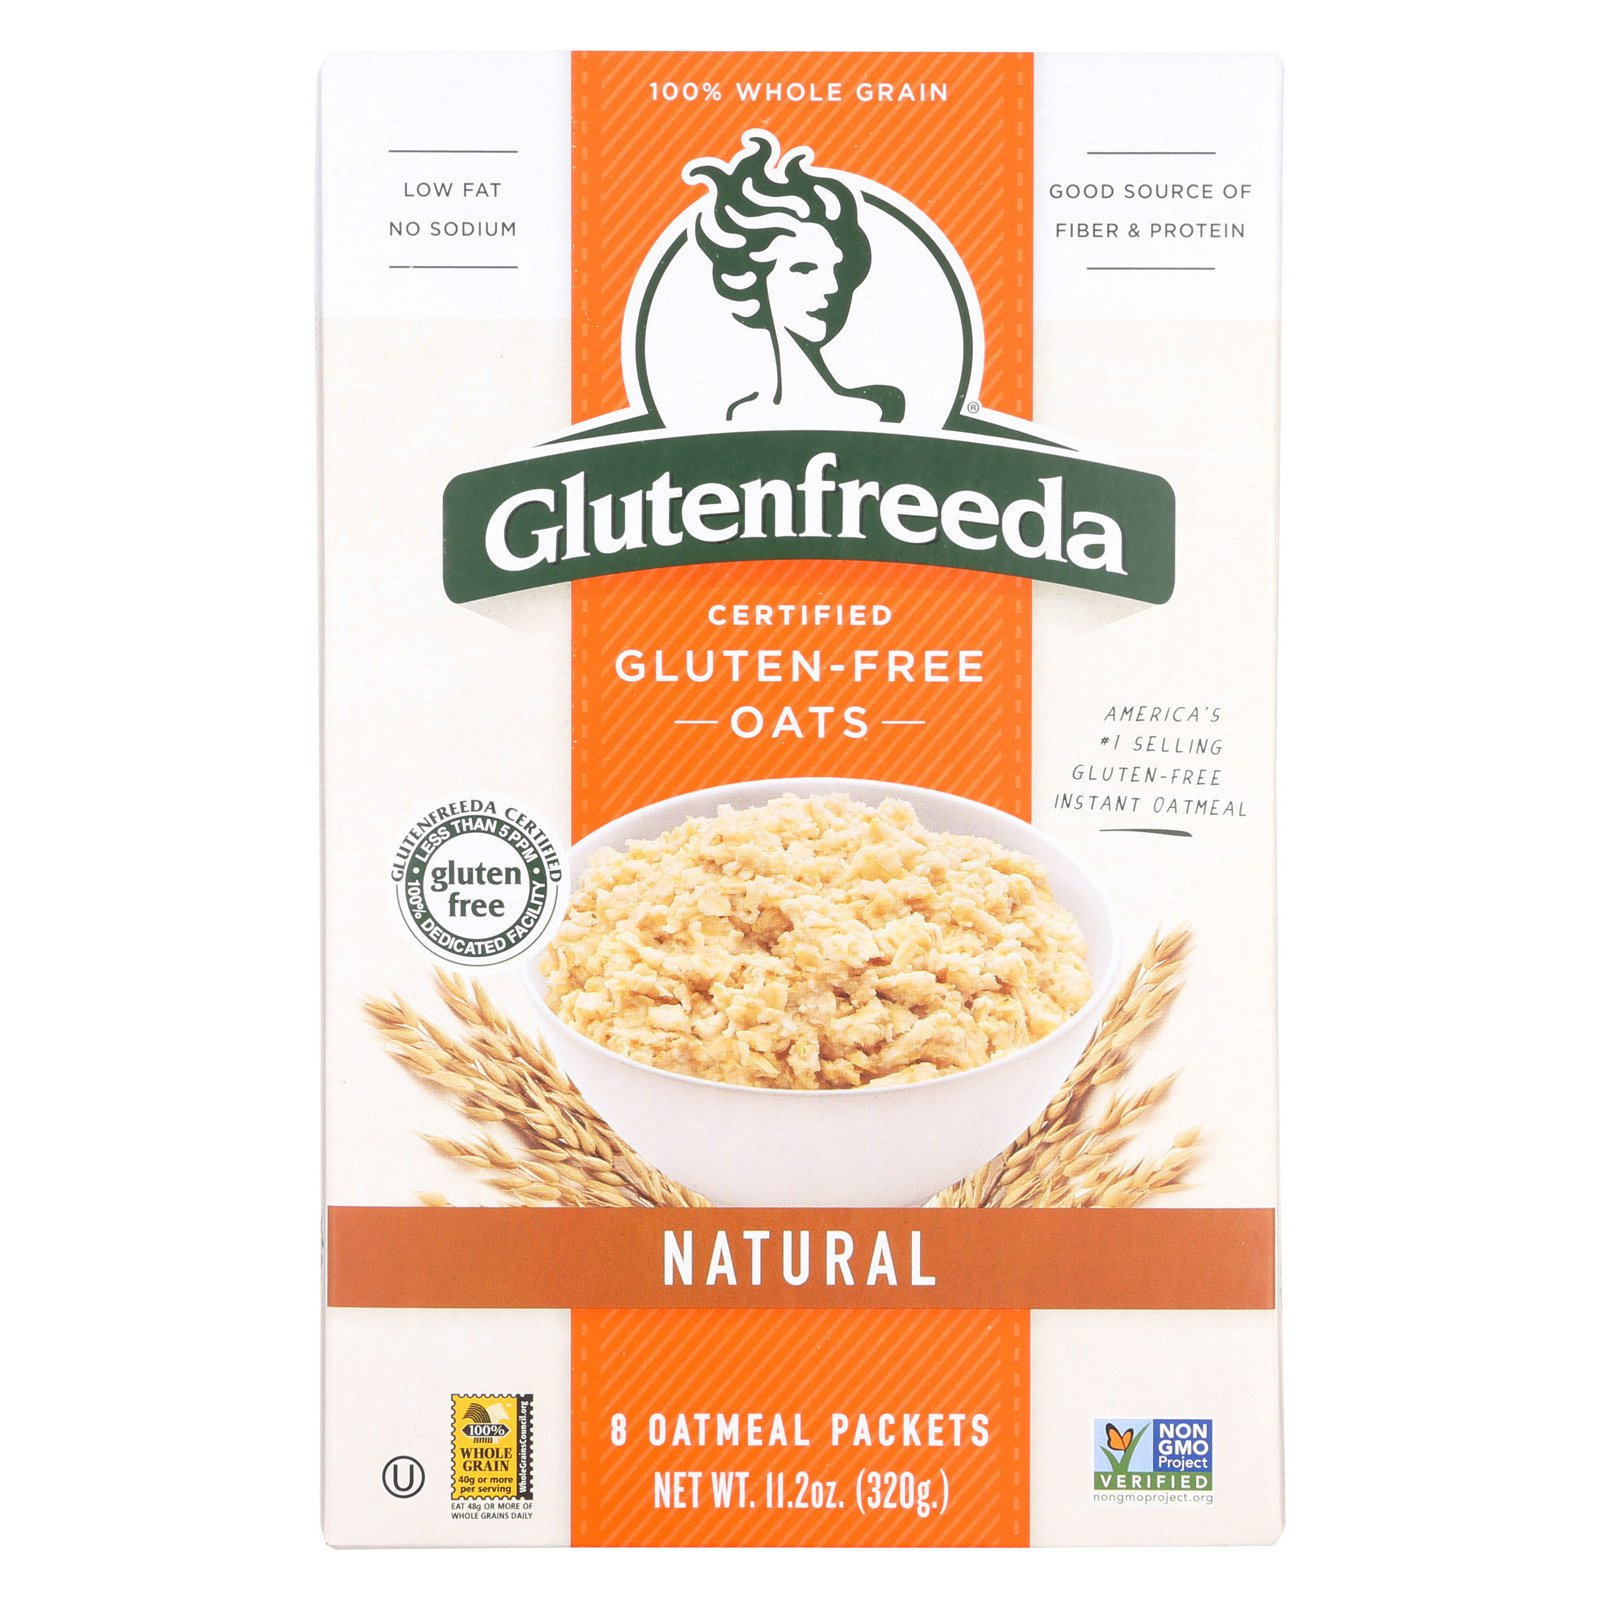 Gluten Freeda Natural Oatmeal - Non GMO - no Sodium - Case of 8 - 11.2 Ounce